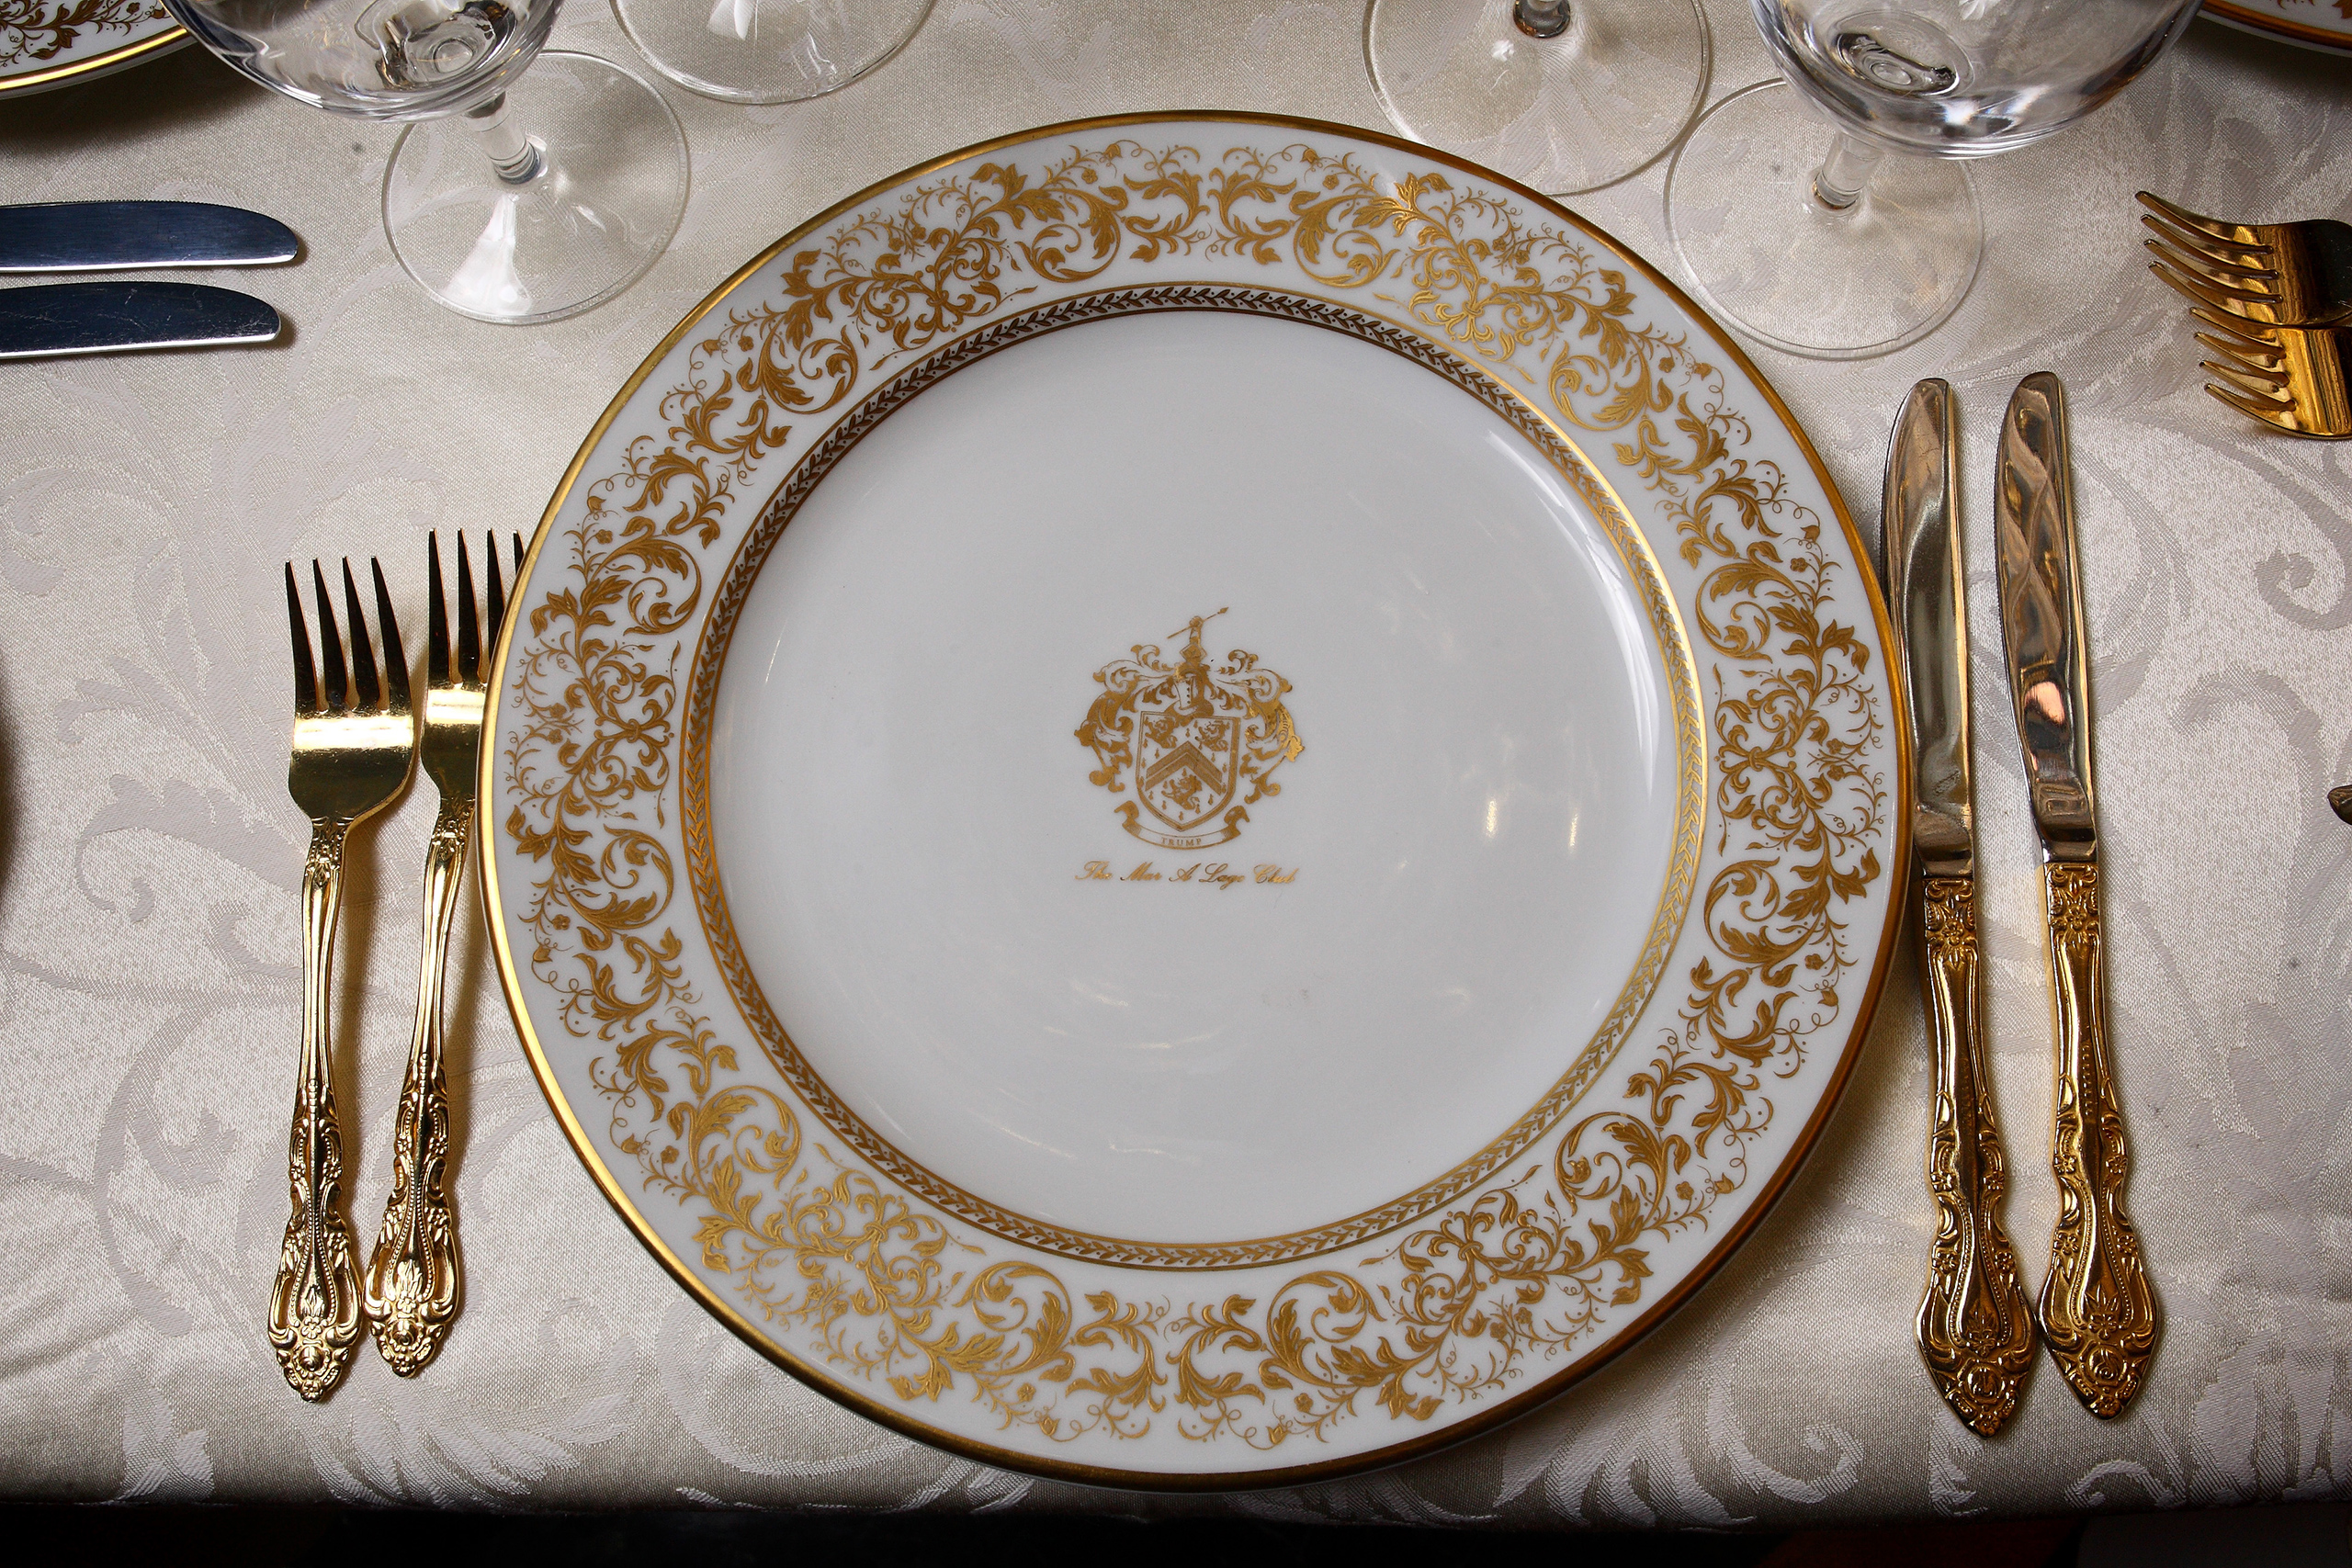 A table setting in the main living room inside Mar-a-Lago on April 11, 2009.